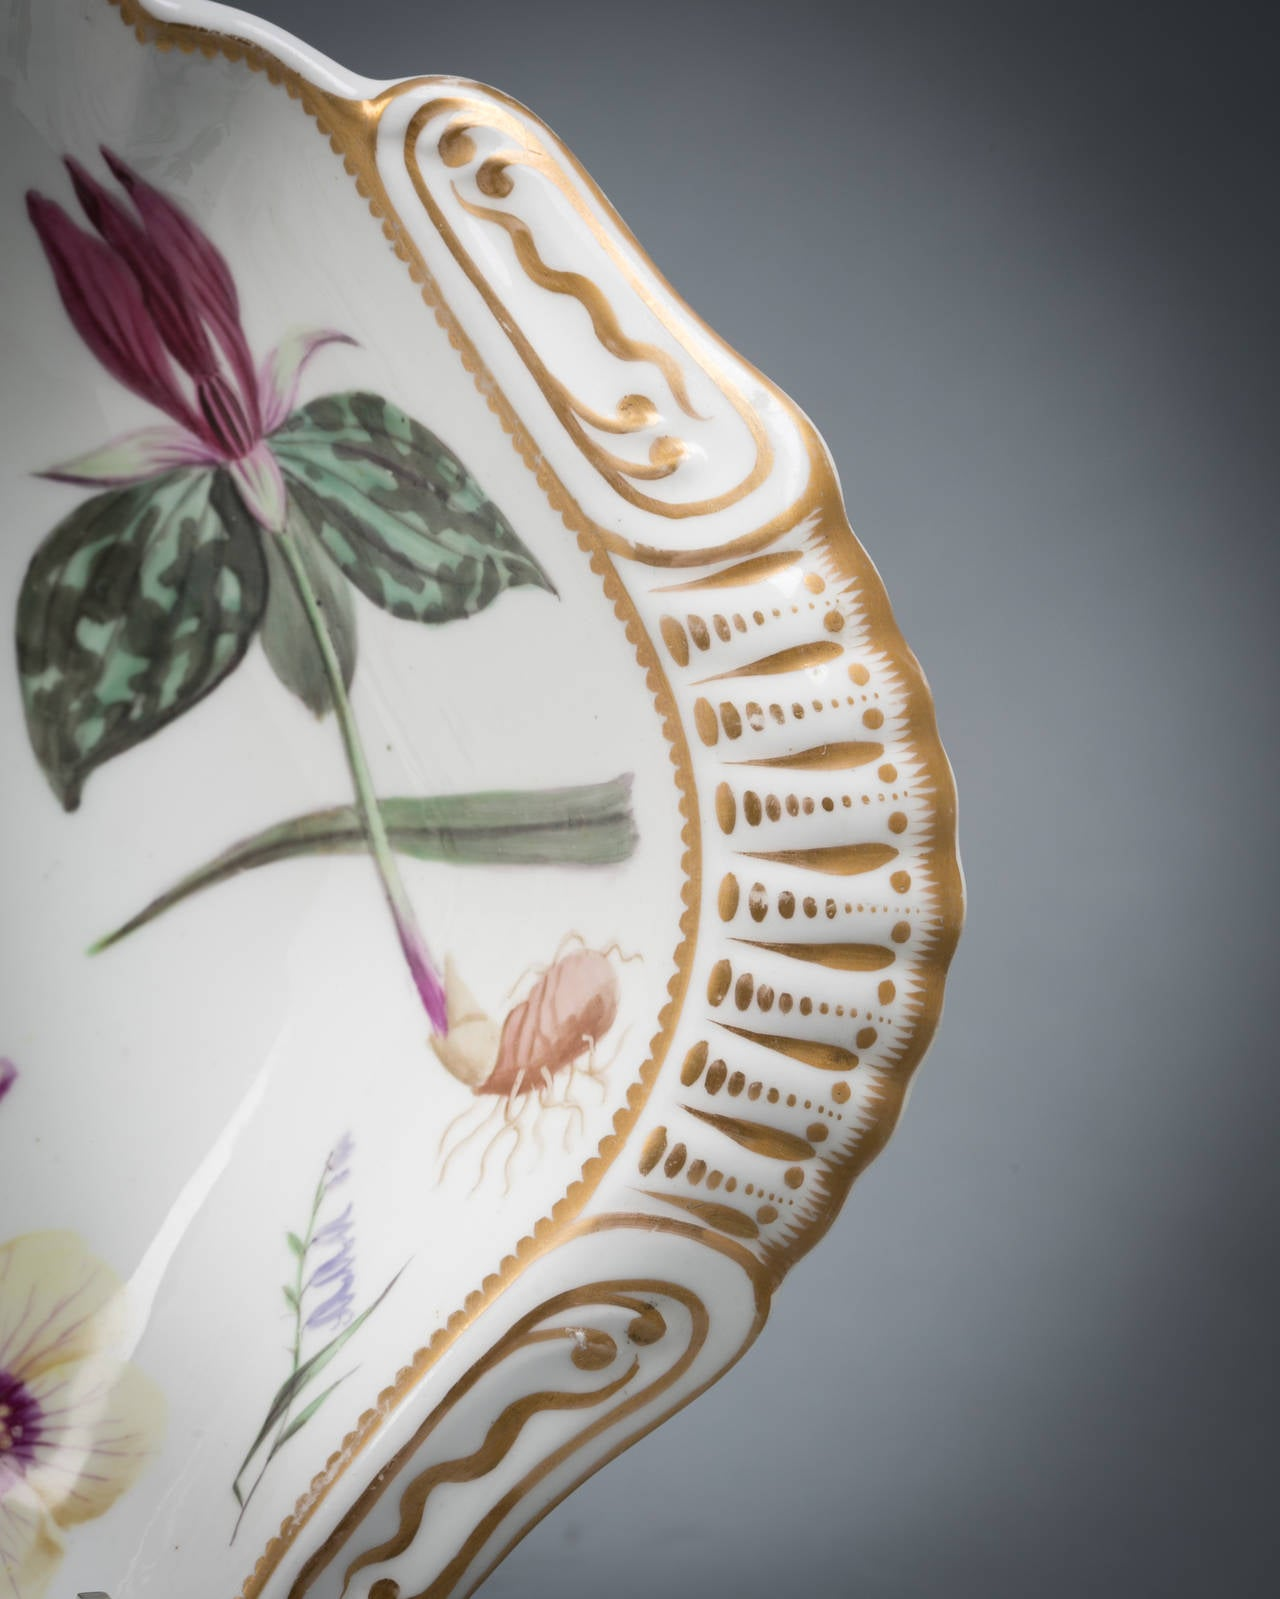 Pair of English Spode porcelain botanical shell-shape dishes, circa 1820. Specimens are titled on the reverse.